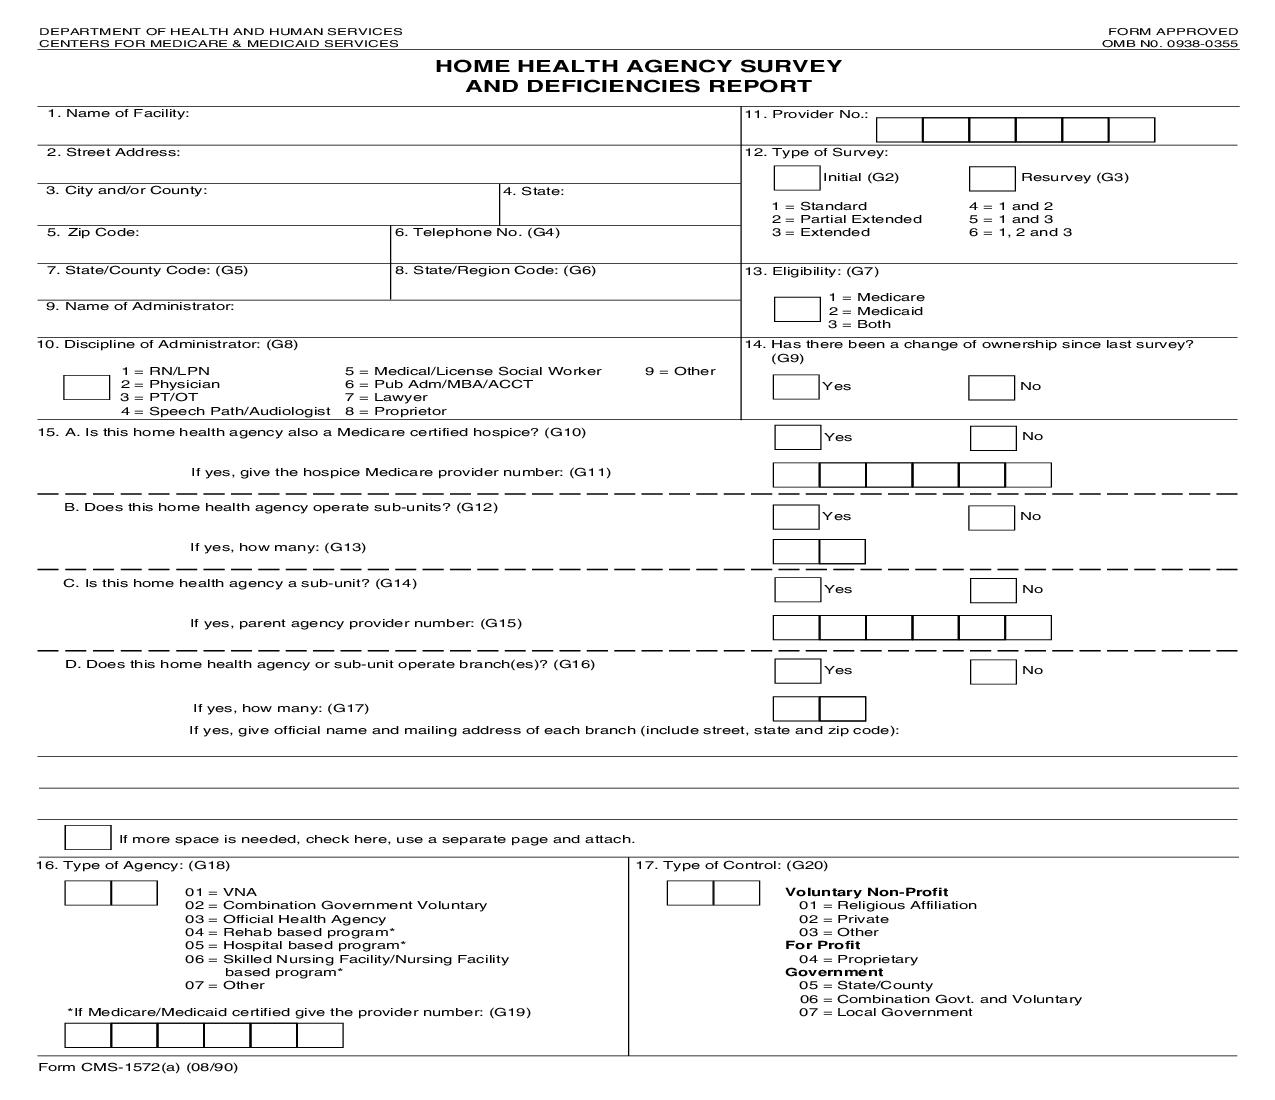 HHA Survey And Deficiencies Report {CMS-1572} | Pdf Fpdf Doc Docx | Official Federal Forms